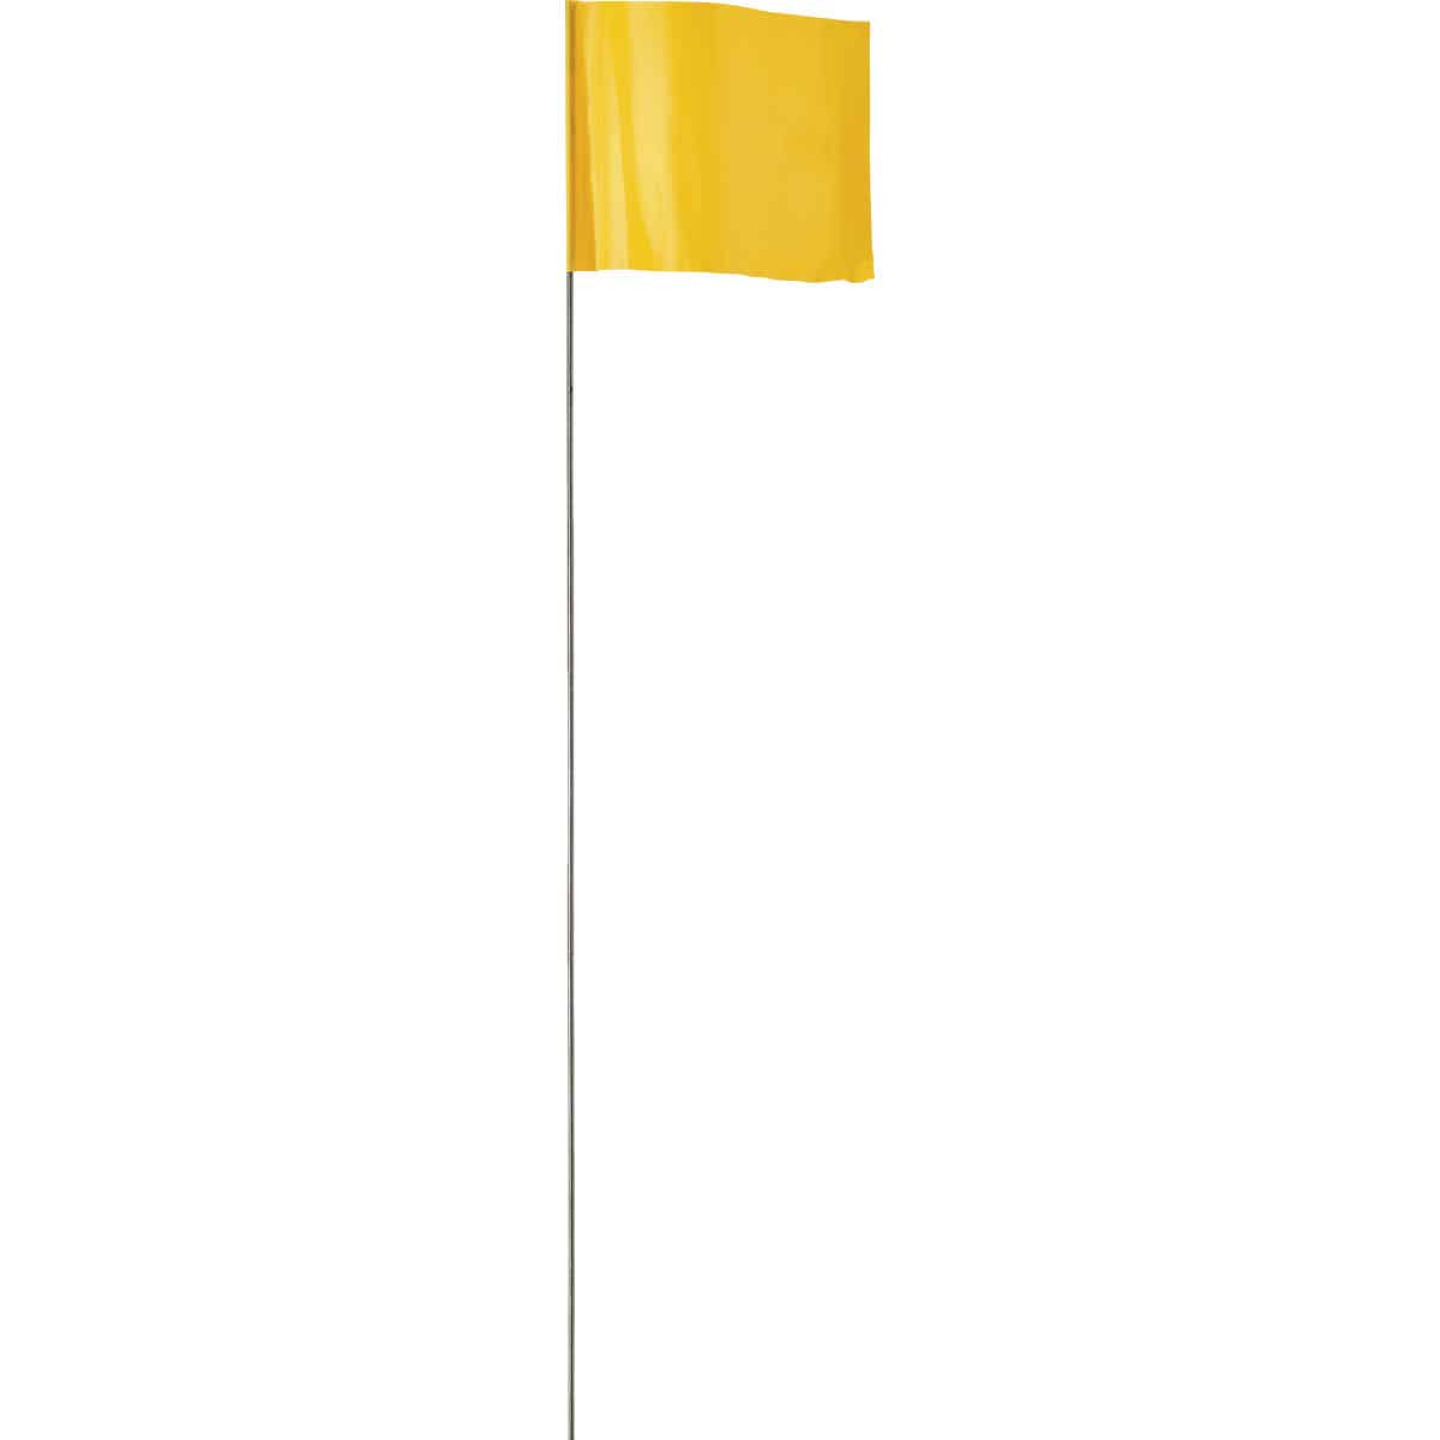 Empire 21 In. Steel Staff Yellow Marking Flags Image 1